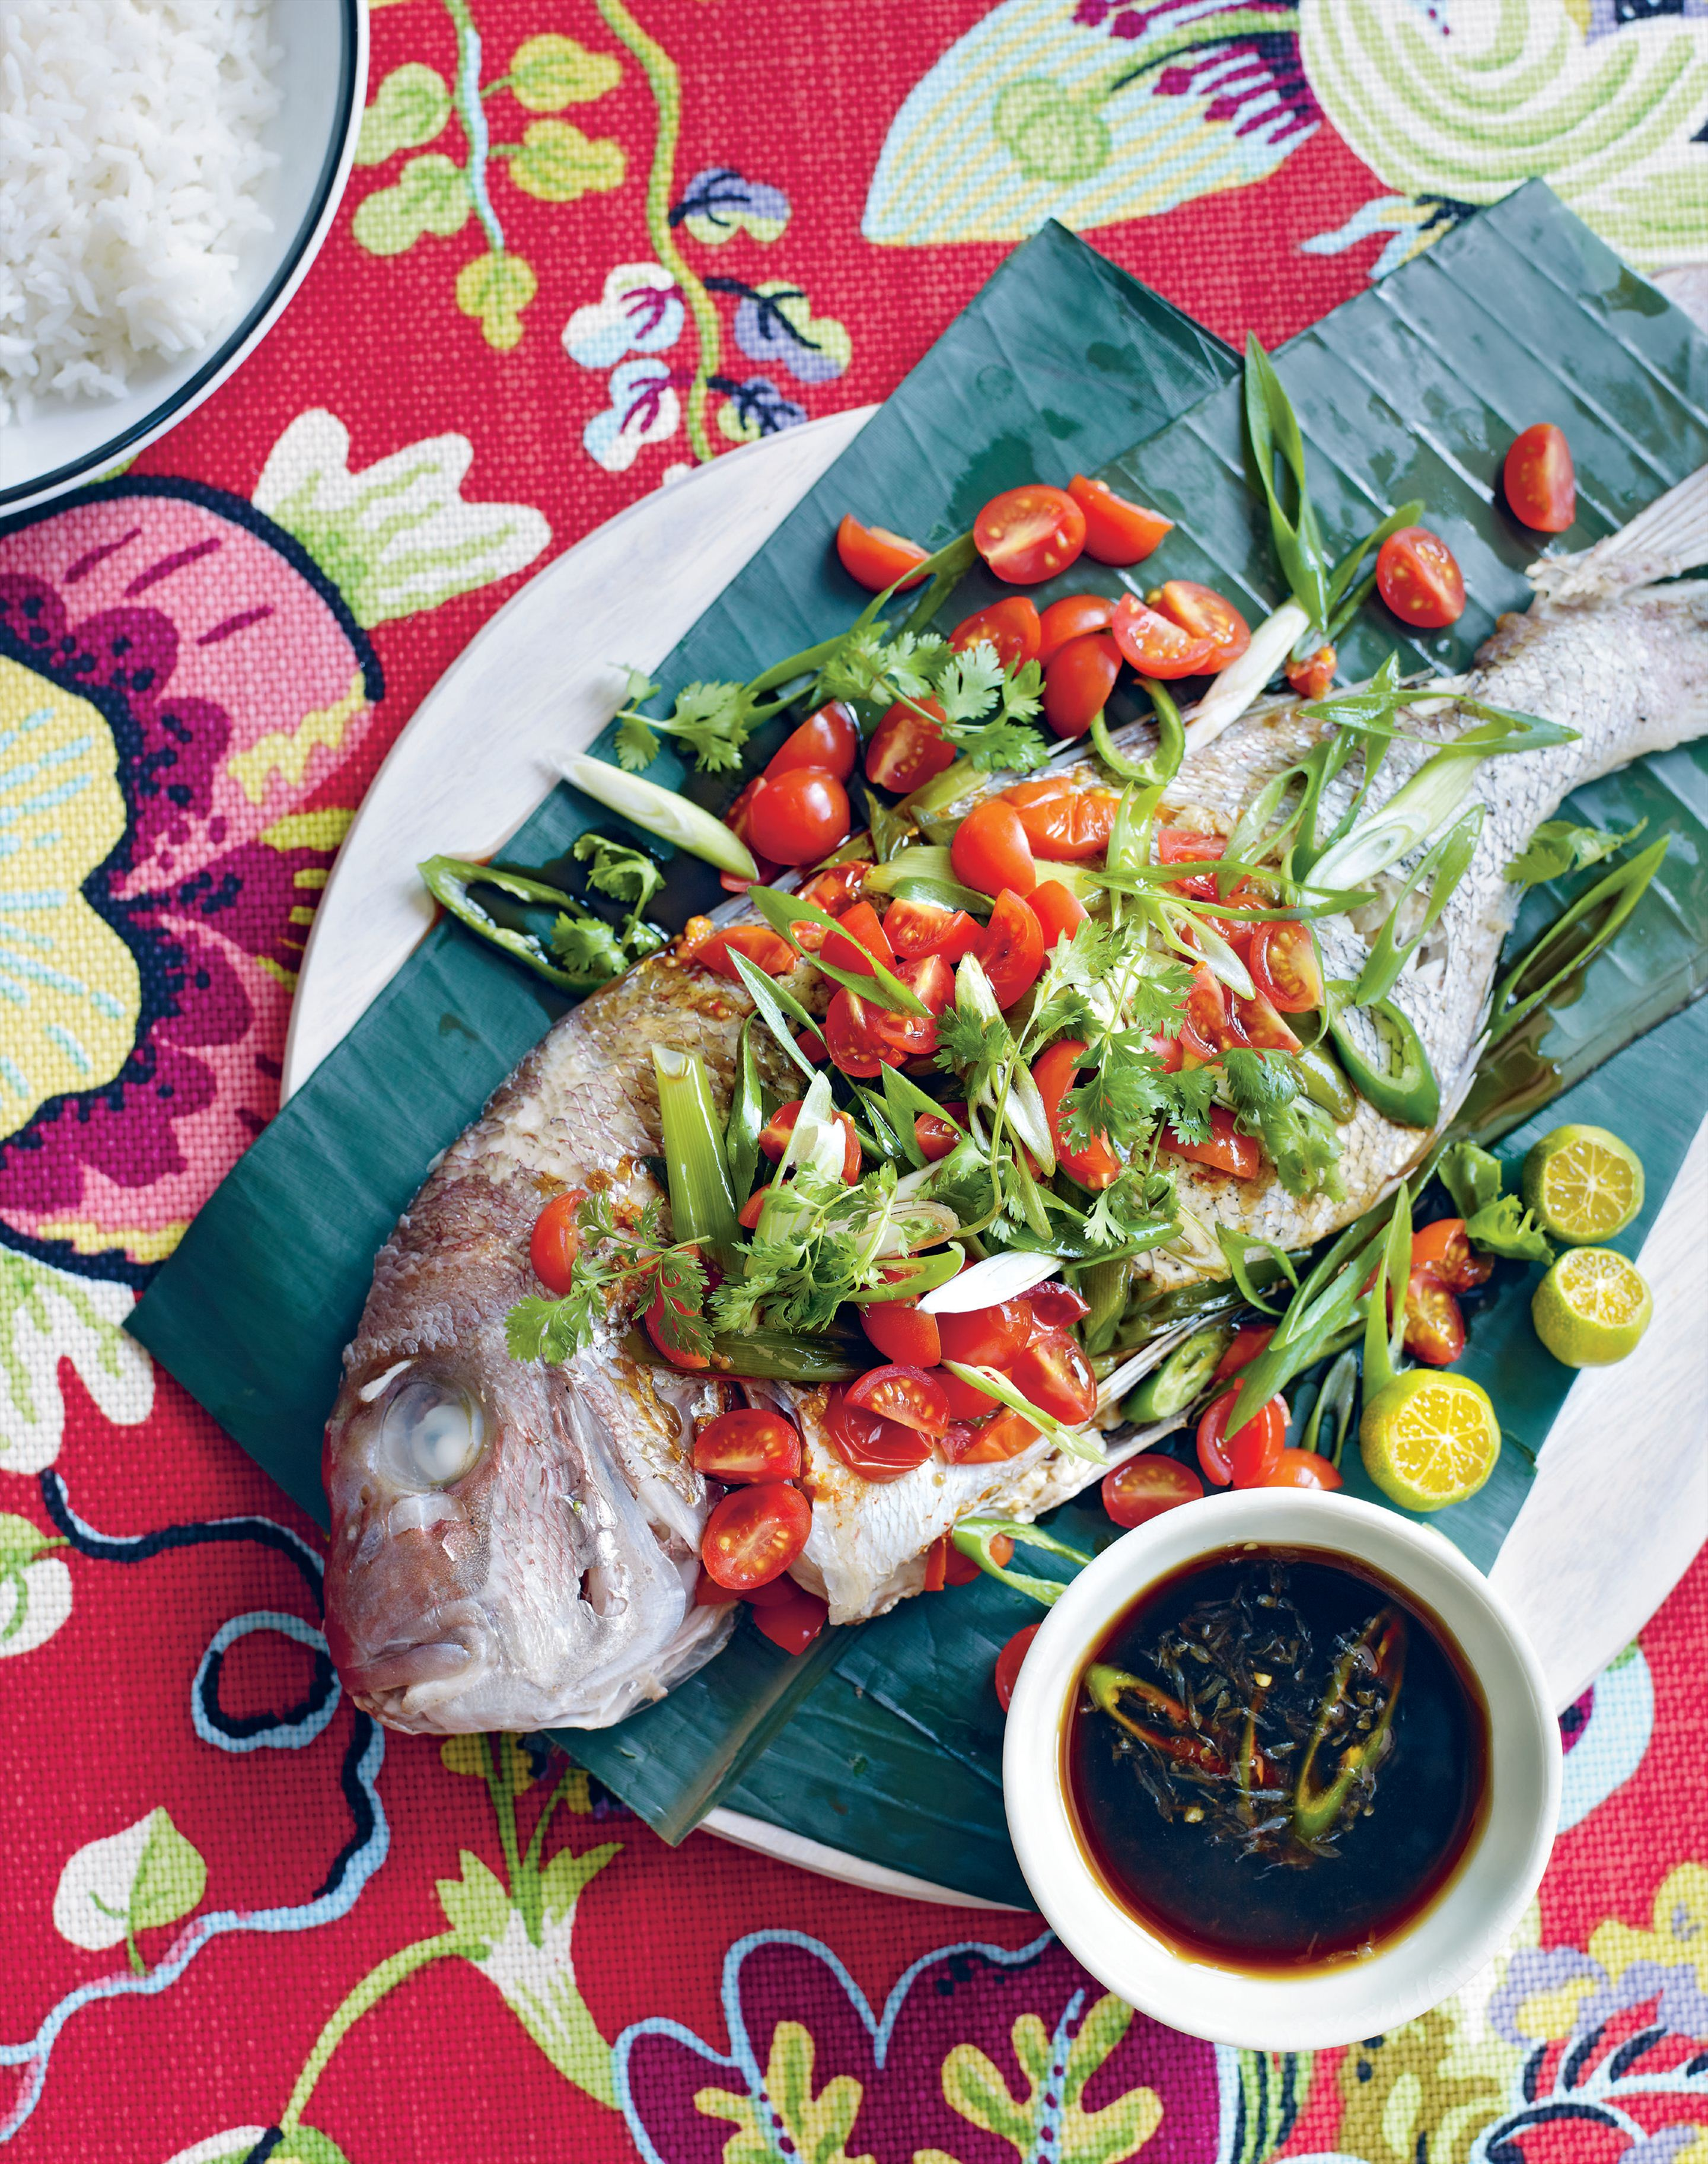 Snapper in banana leaves